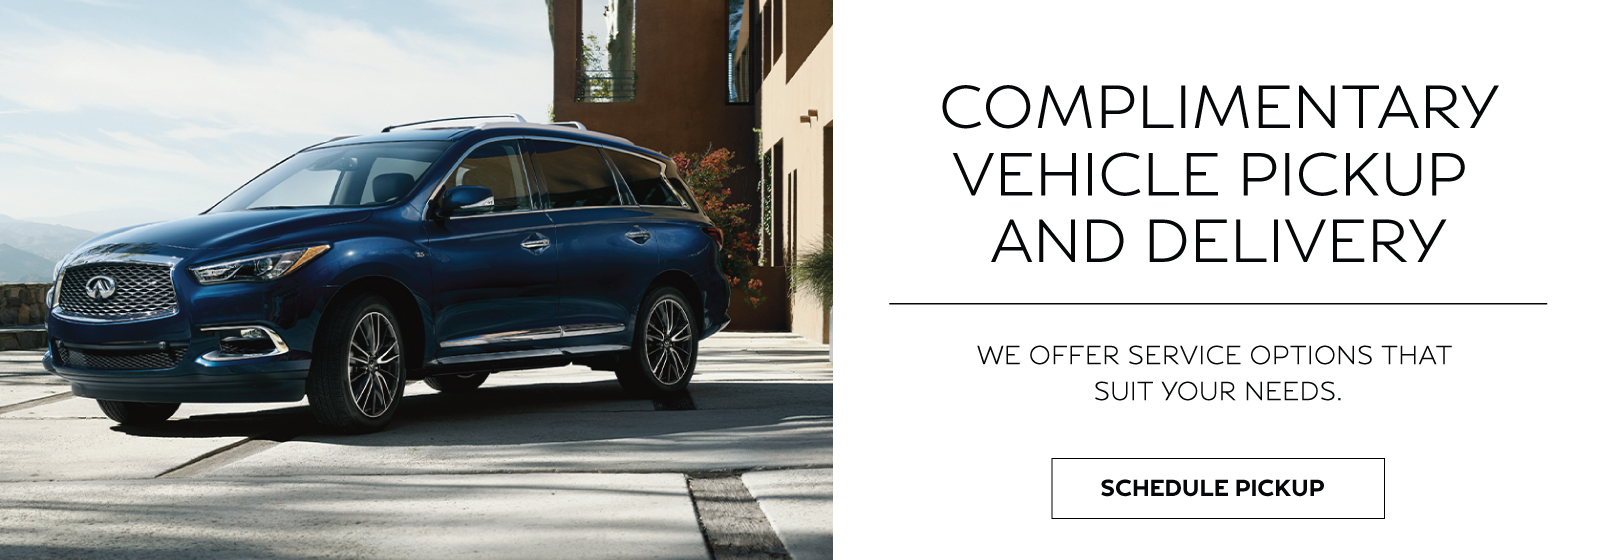 Complimentary Vehicle Pick up and Delivery.